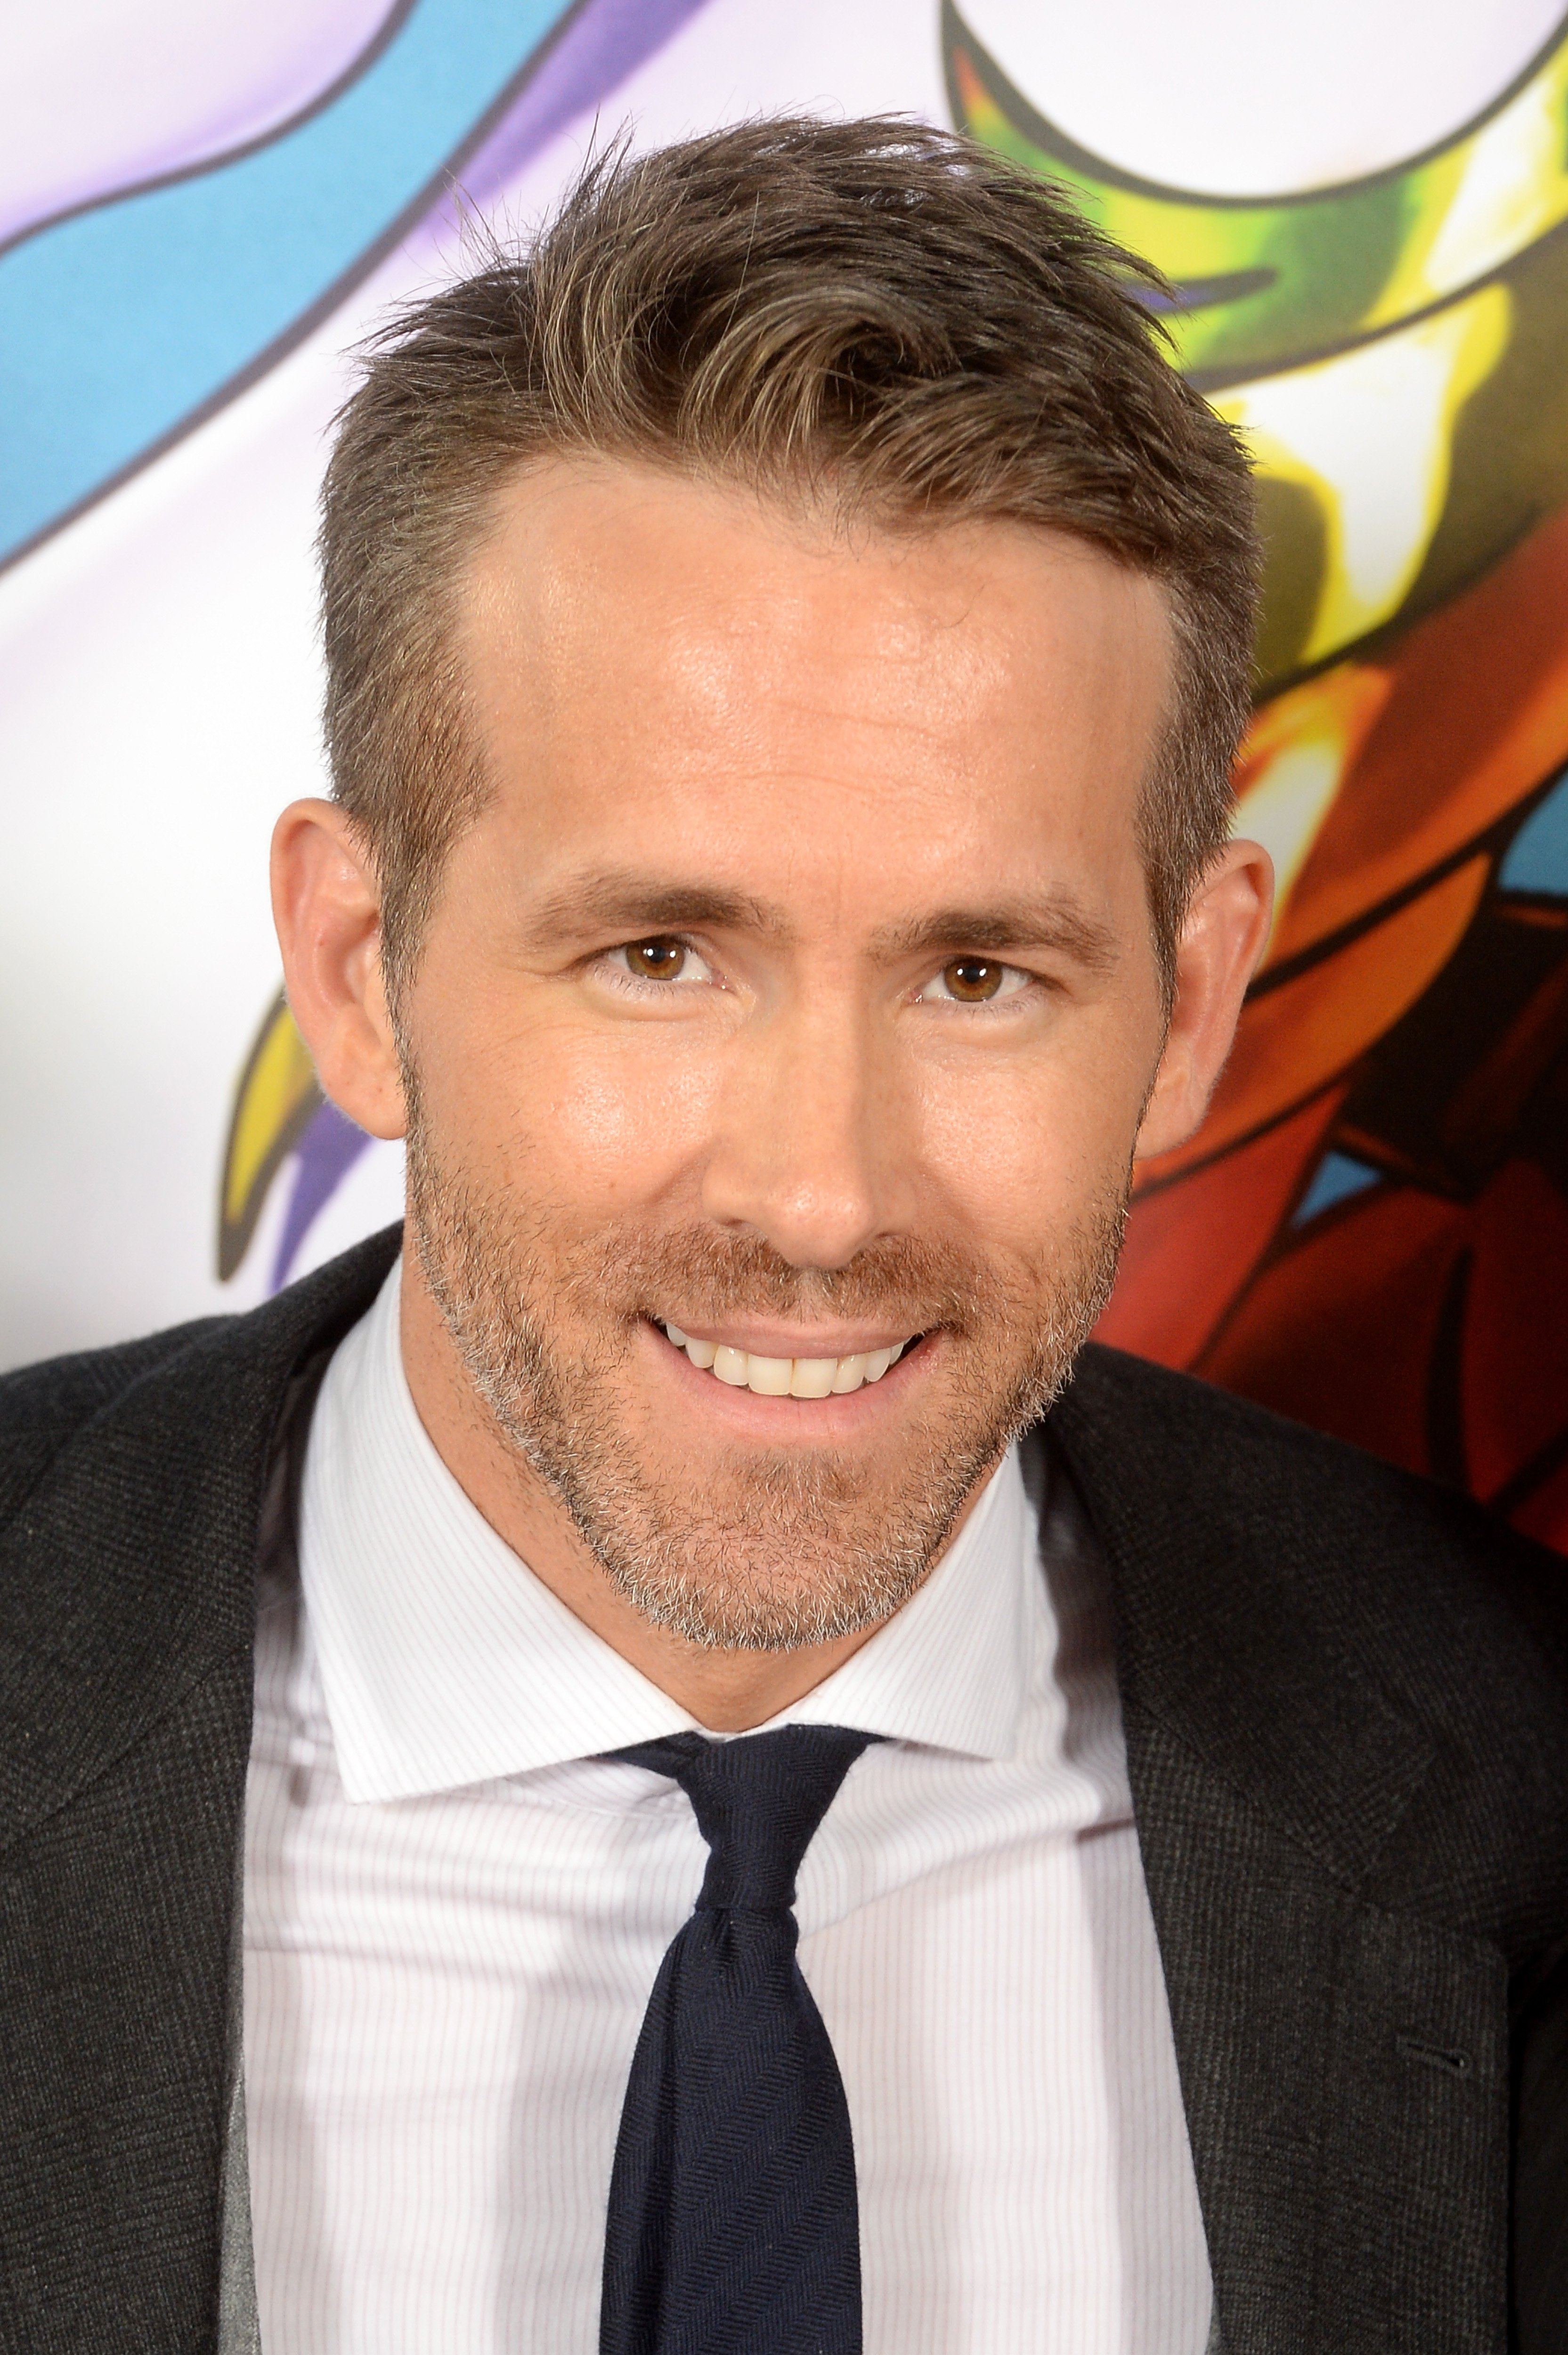 Ryan Reynolds attends the 'Deadpool 2' fan screening at Cineworld Leicester Square on May 10, 2018, in London, England. Source: Getty Images.